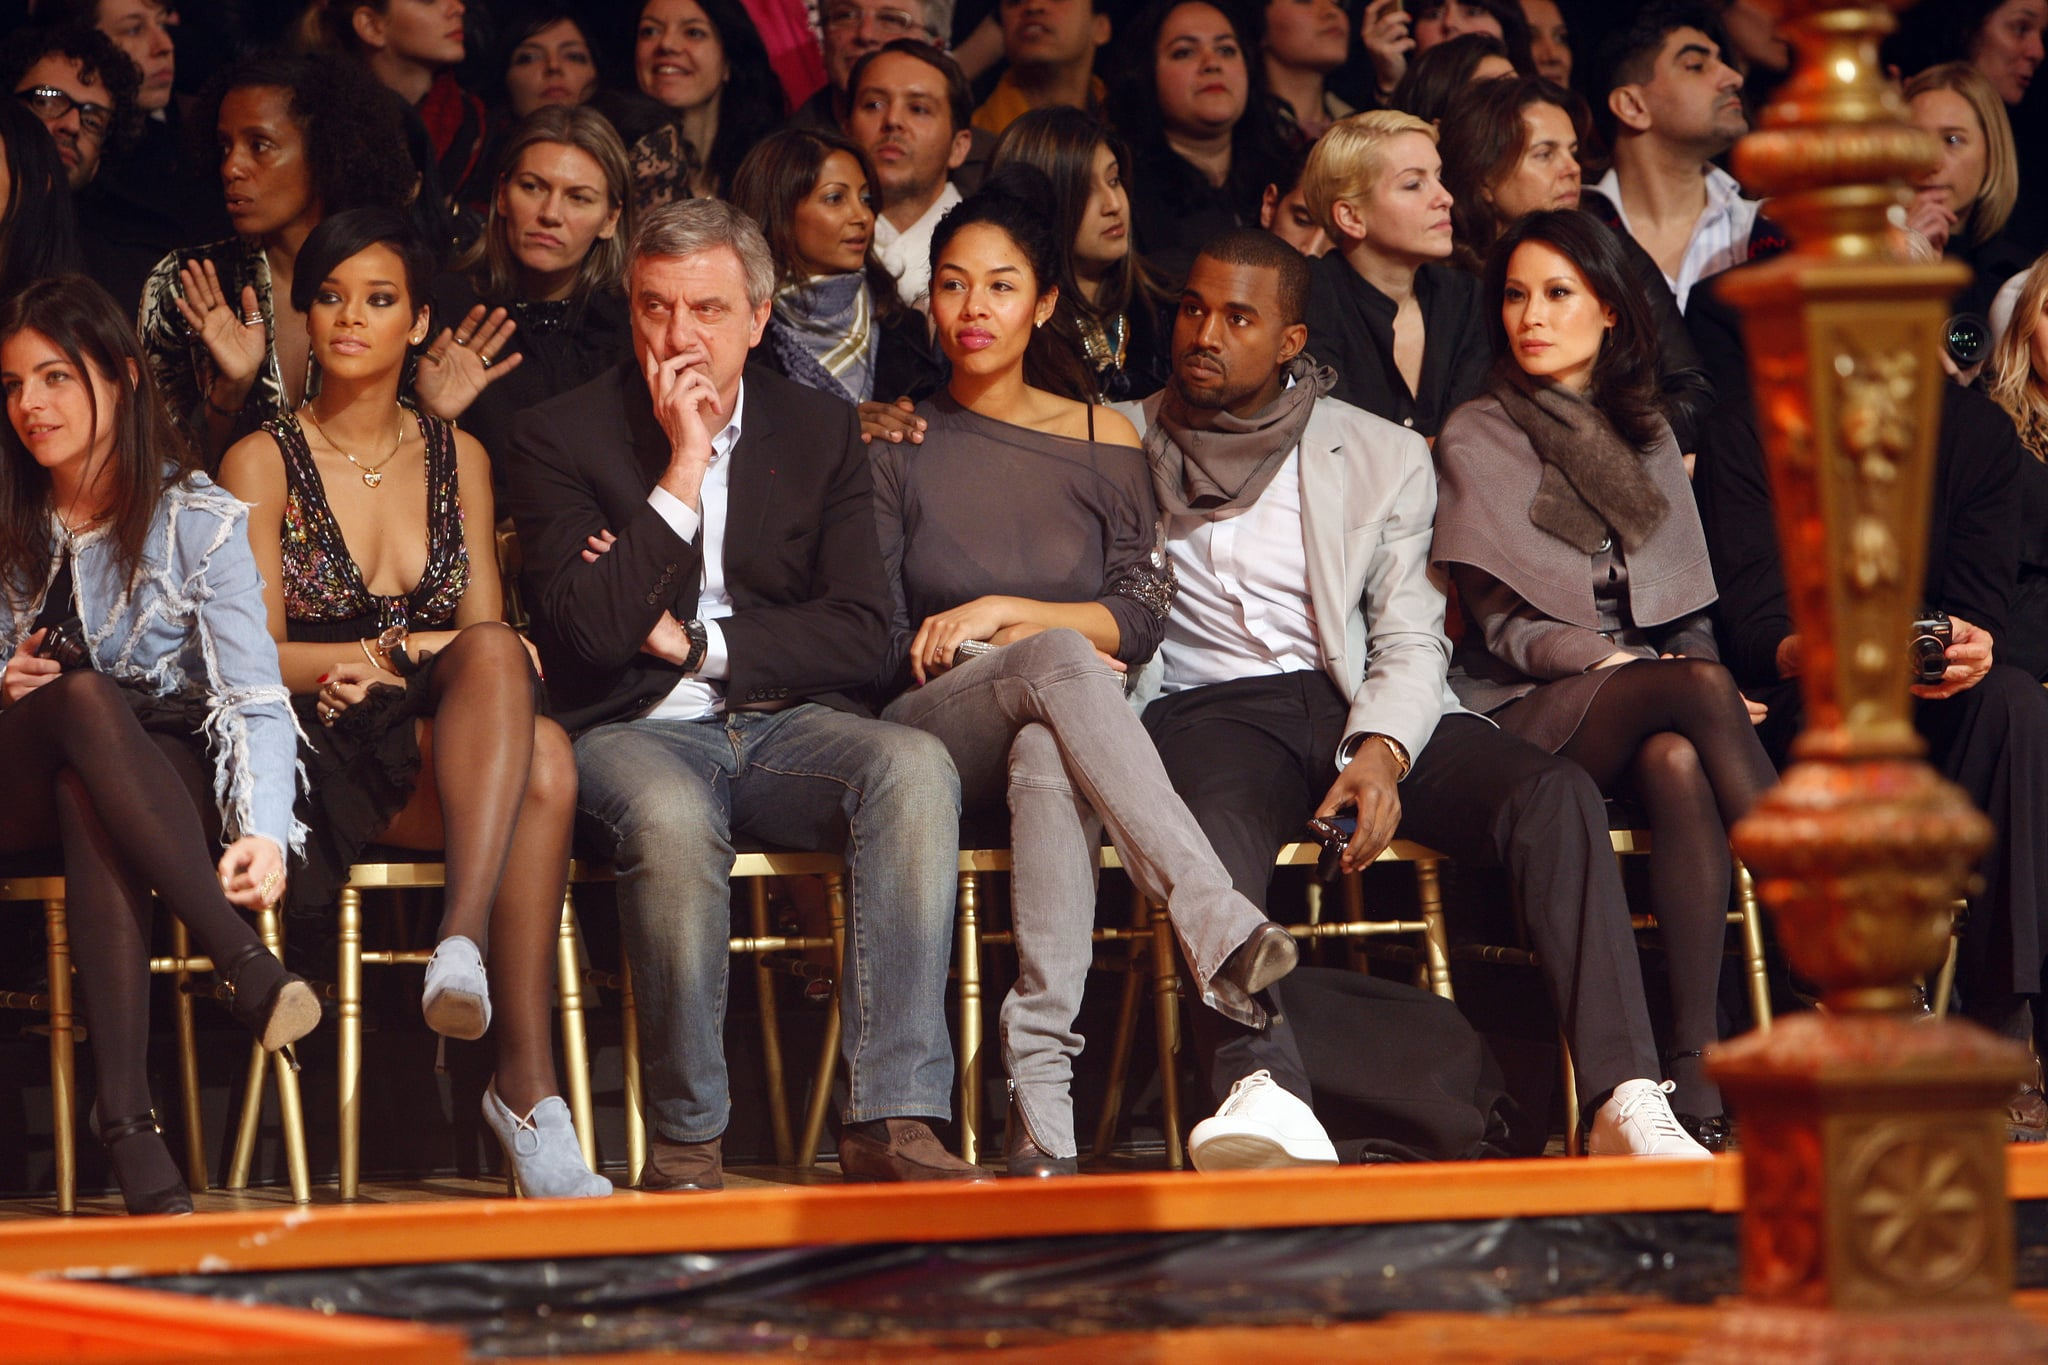 Kanye West, Lucy Liu, and Rihanna were all together for Paris Fashion Week in 2009.